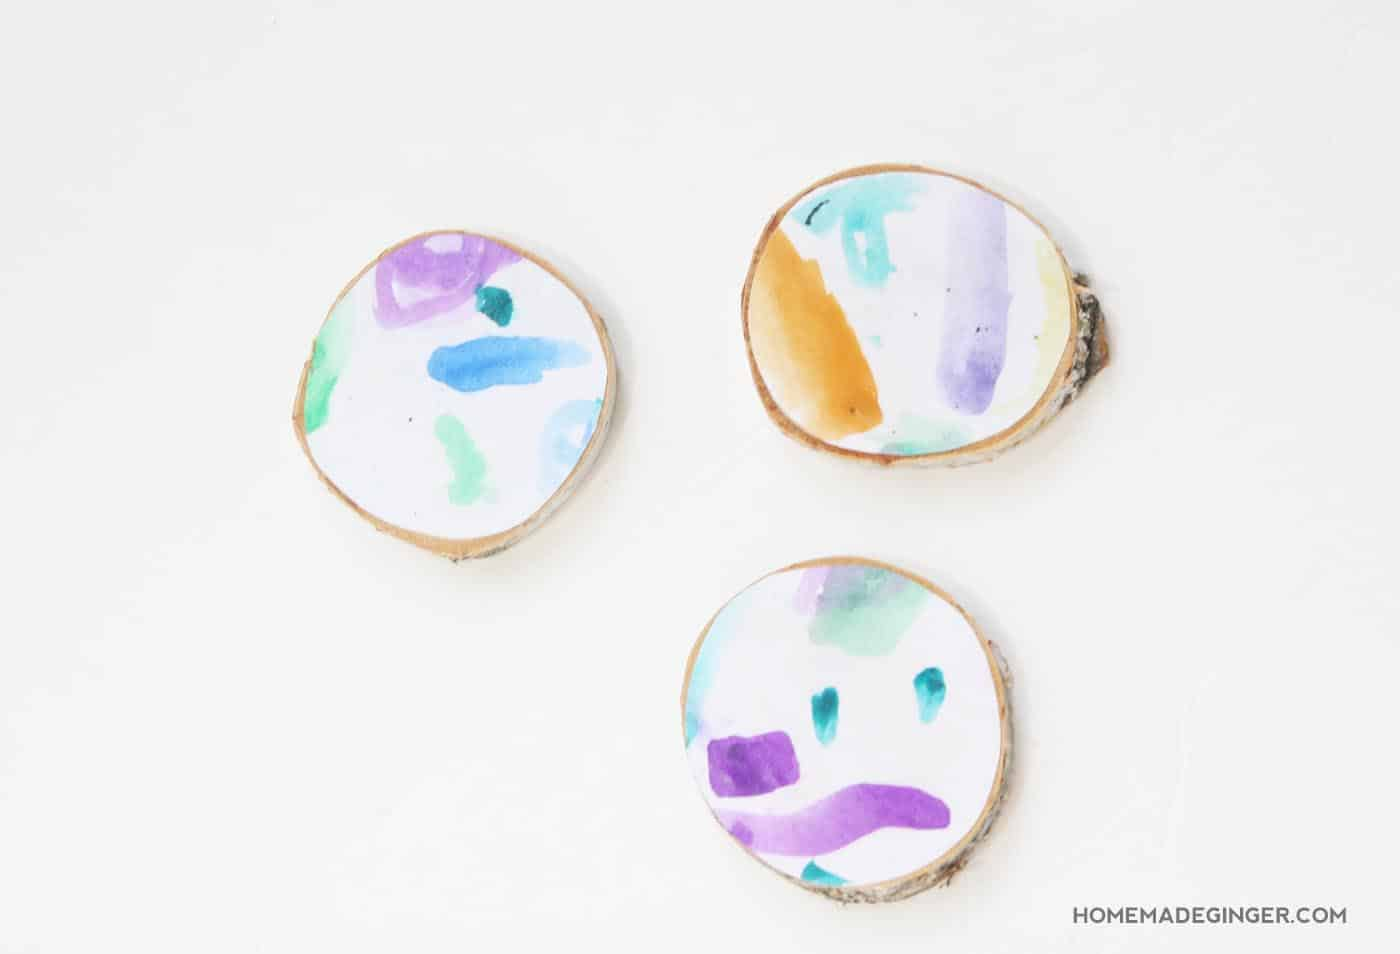 Learn how to make some coasters using kids' art and give them as gifts. Kids can help craft the coasters as well because it's super easy!